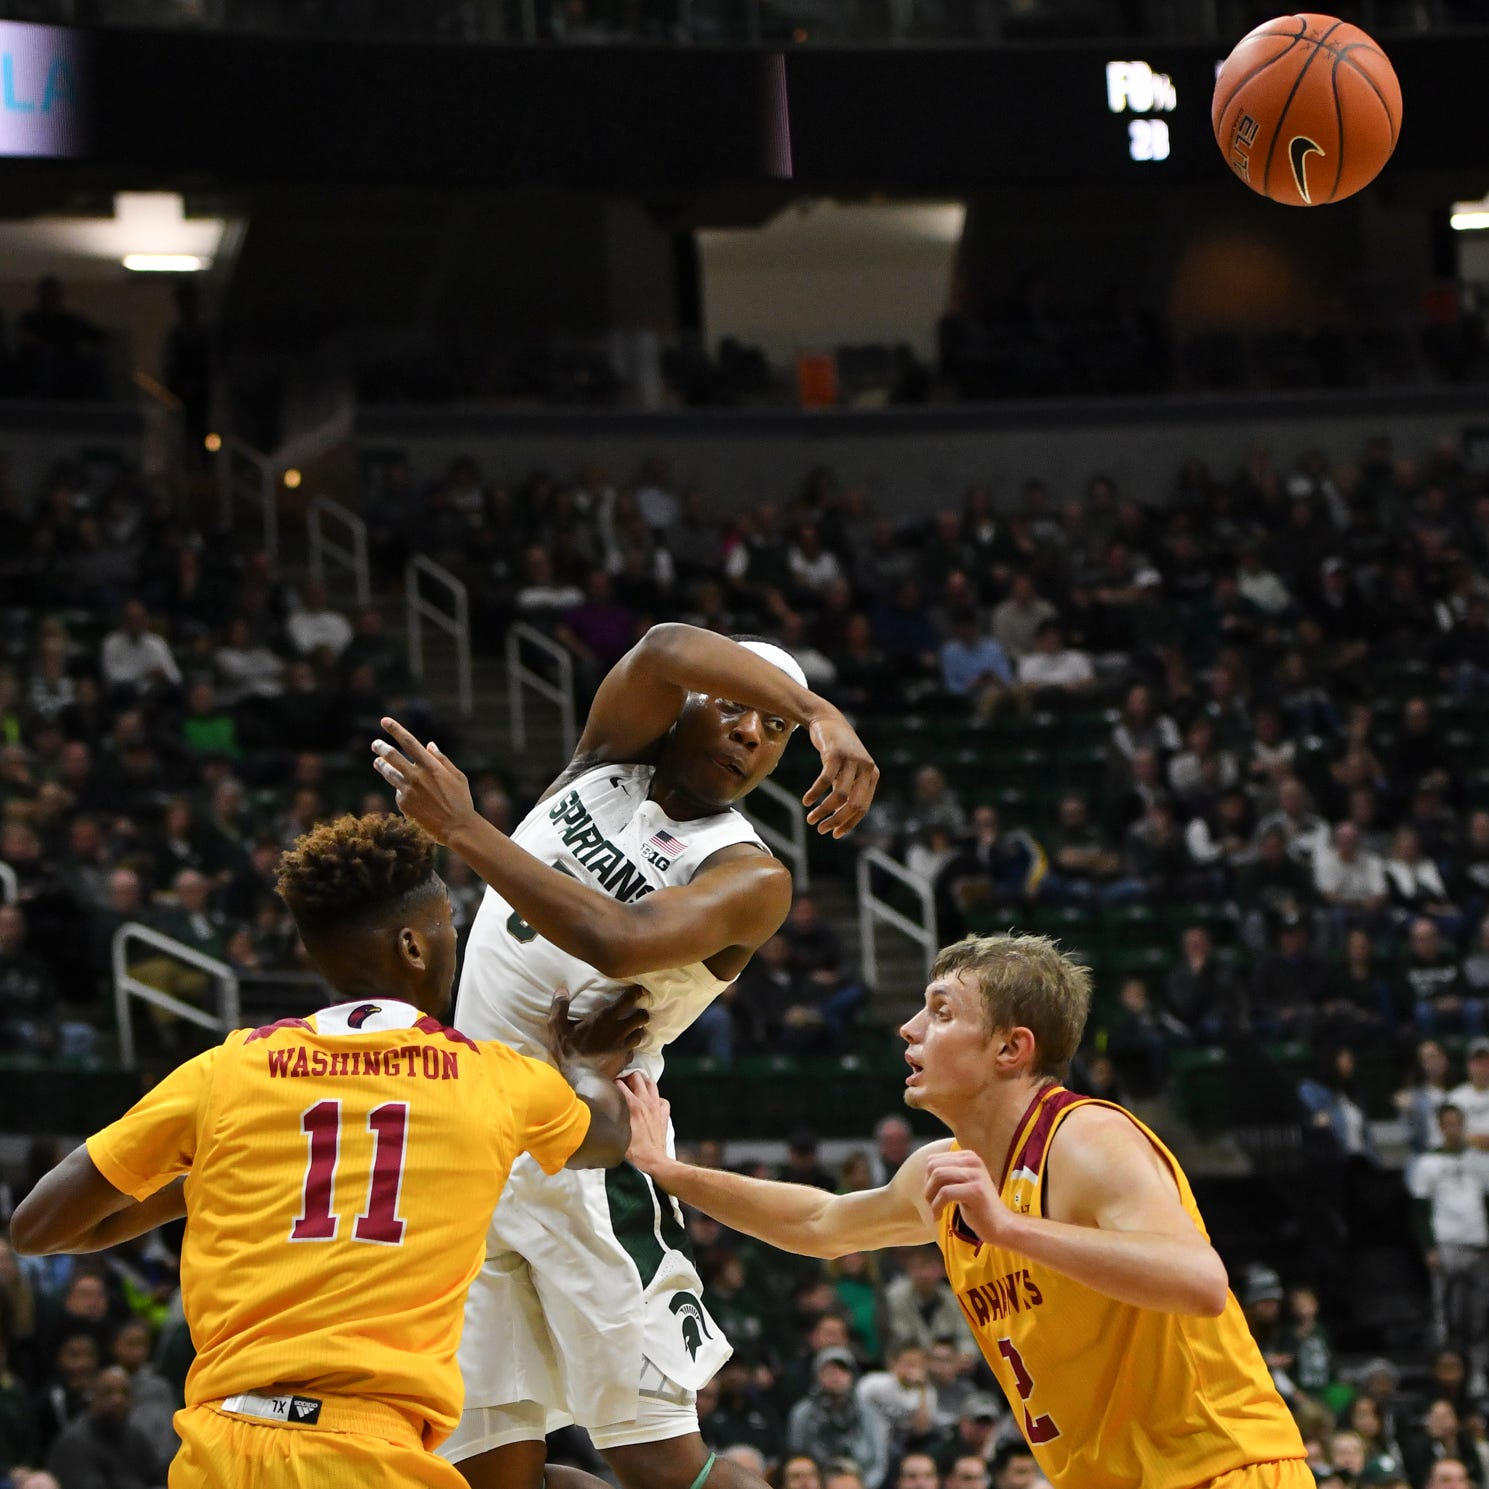 Michigan State basketball suffers setback in 80-59 win vs. Louisiana Monroe